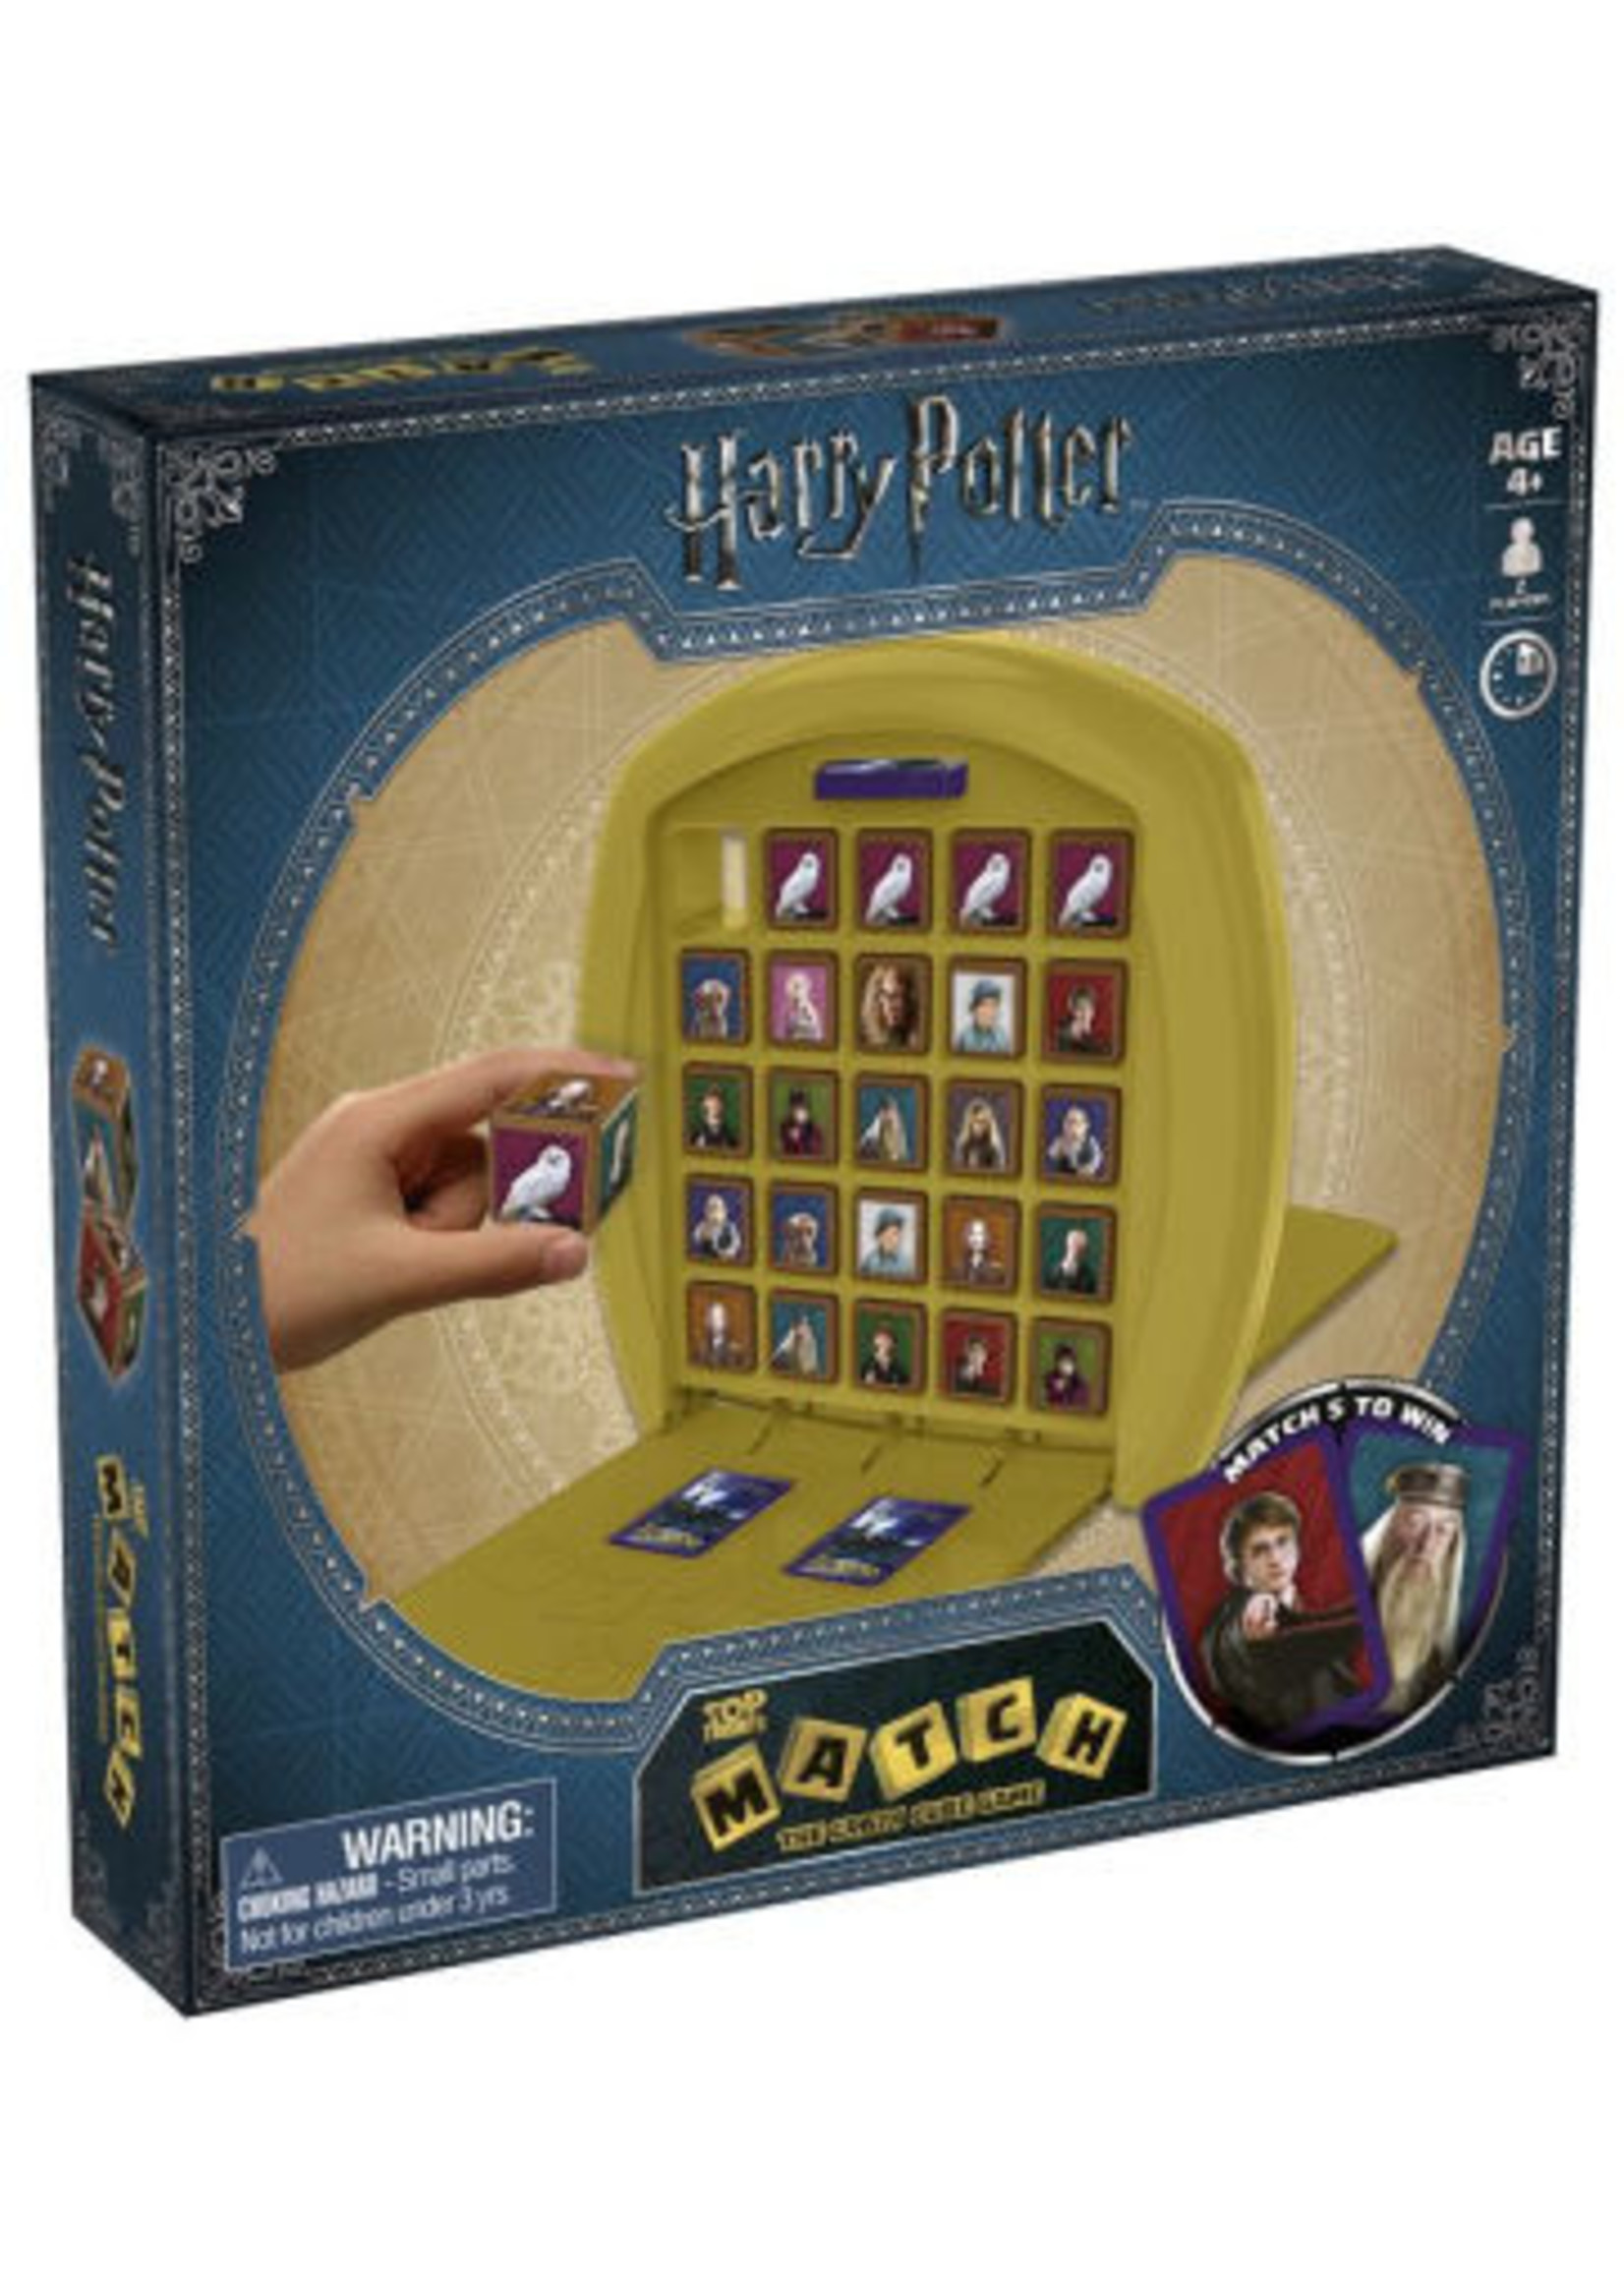 Top Trumps Match Game Harry Potter